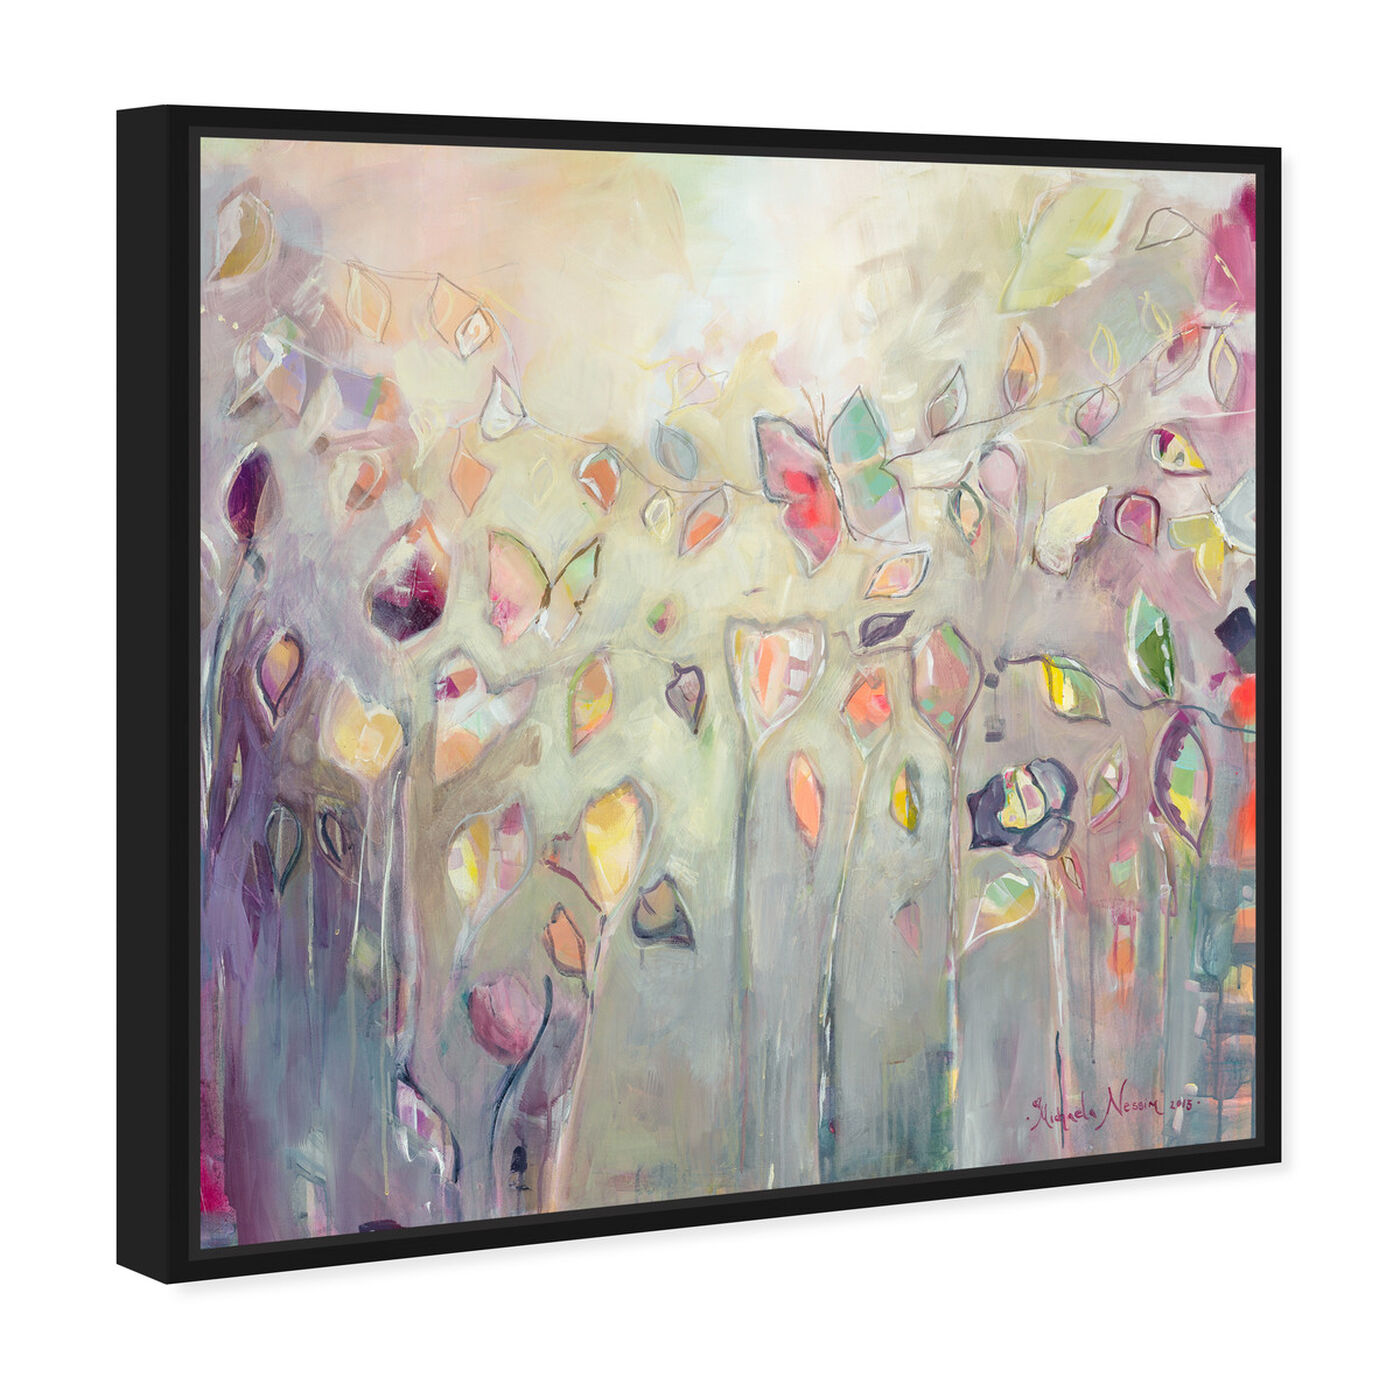 Angled view of Butterfly Dance by Michaela Nessim Canvas Art featuring abstract and paint art.